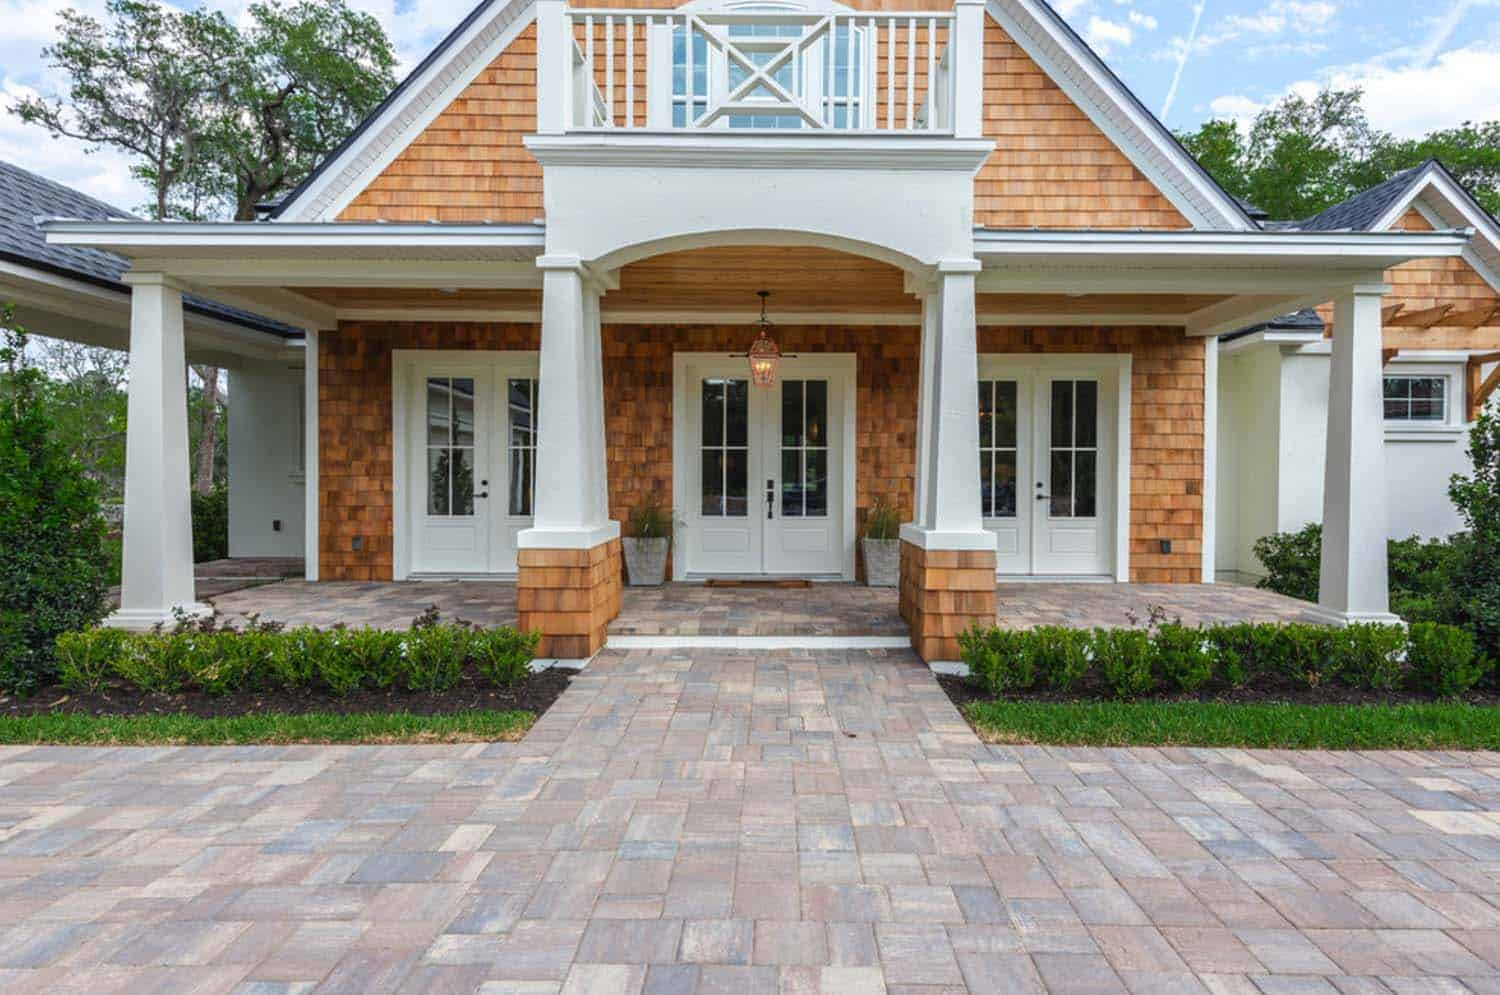 transitional-style-model-home-cottage-home-company-03-1-kindesign